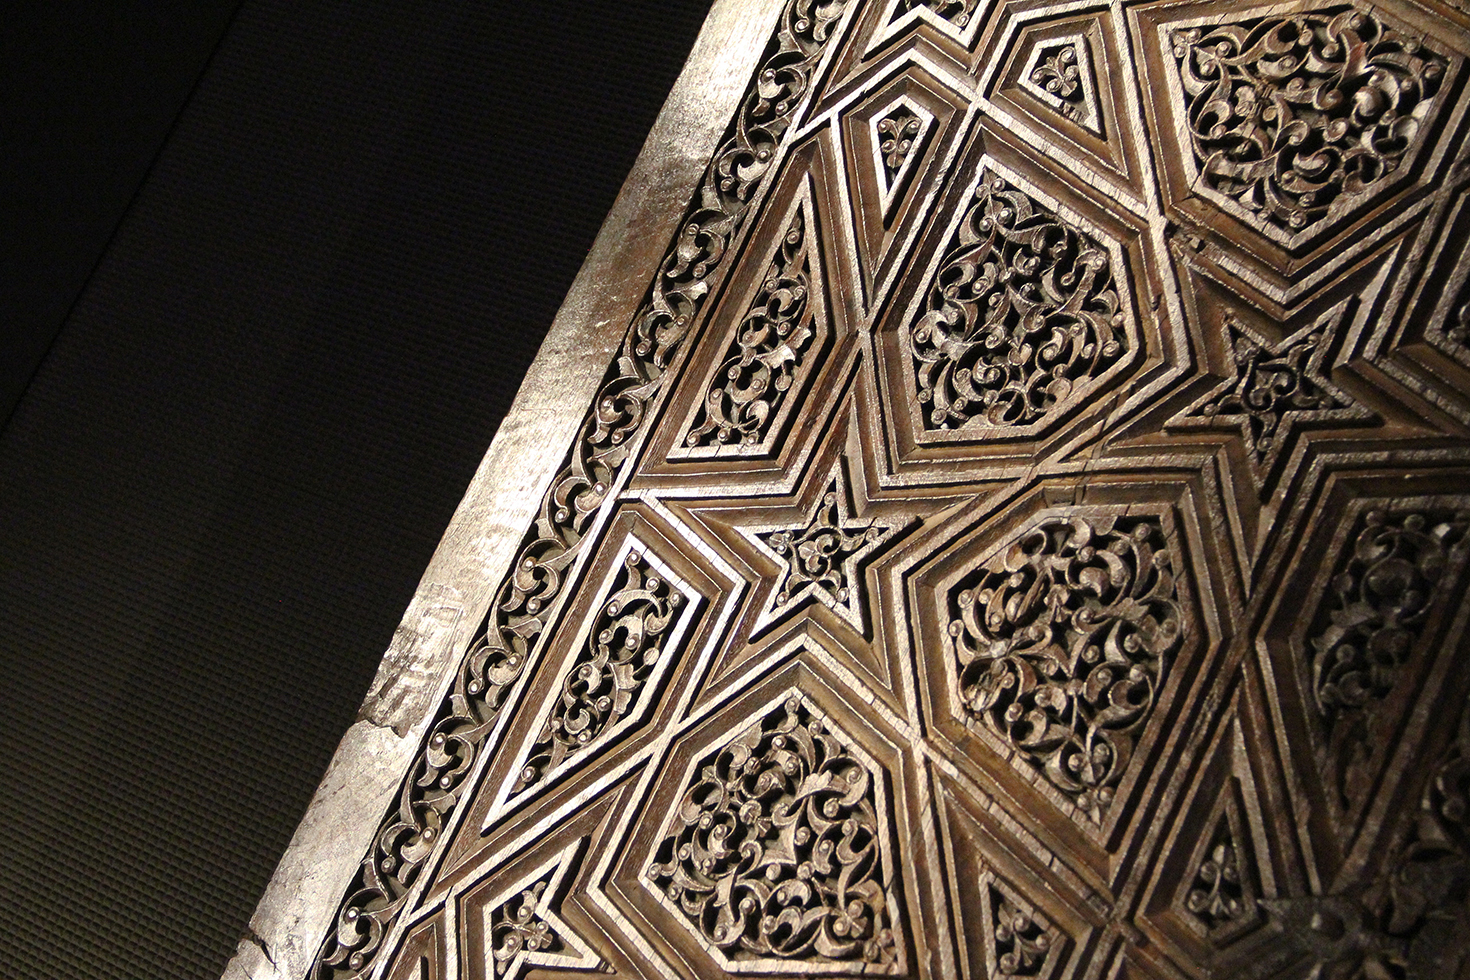 13th Century Turkish Window Shutters, Museum of Islamic Art | Doha, Qatar